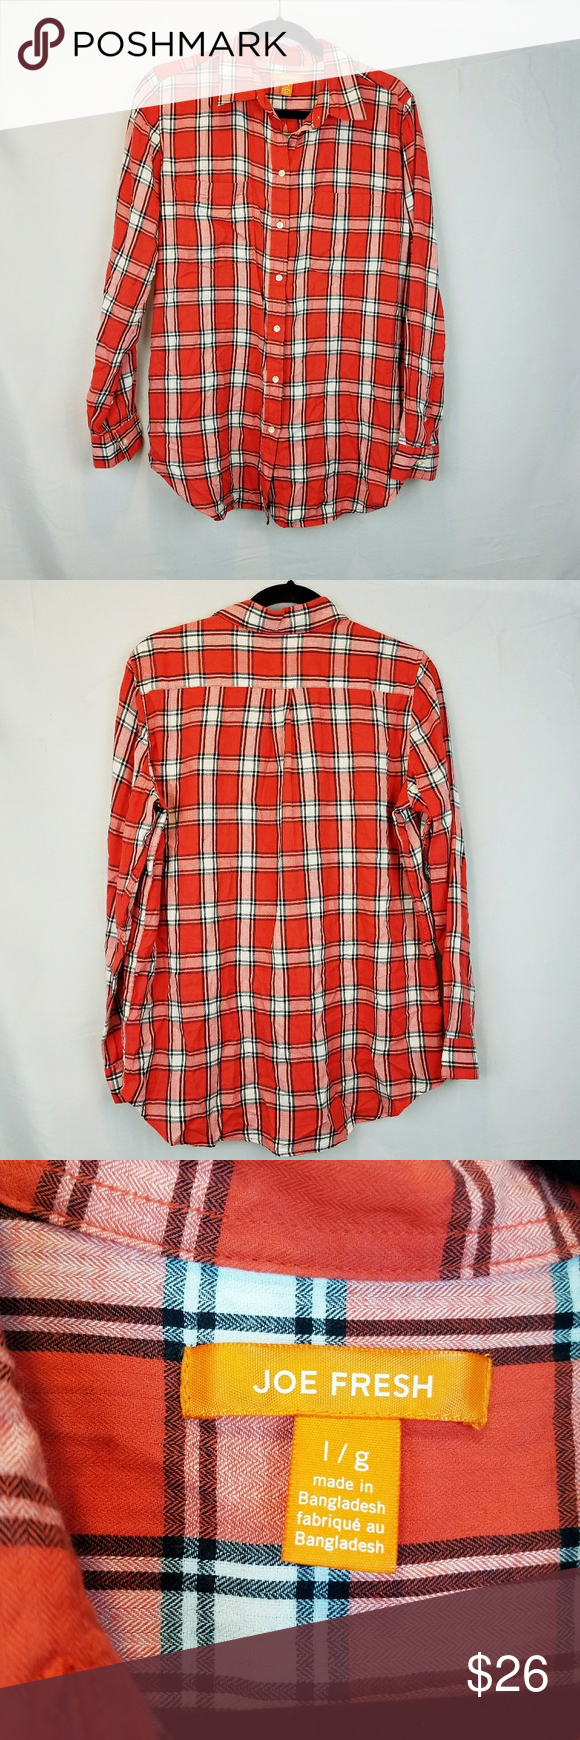 b0f4199cf Joe Fresh Plaid Button Down Shirt Womens Red Large Joe Fresh Plaid button  down shirt is a must for fall! Pair with your favorite jeans and head to  the apple ...